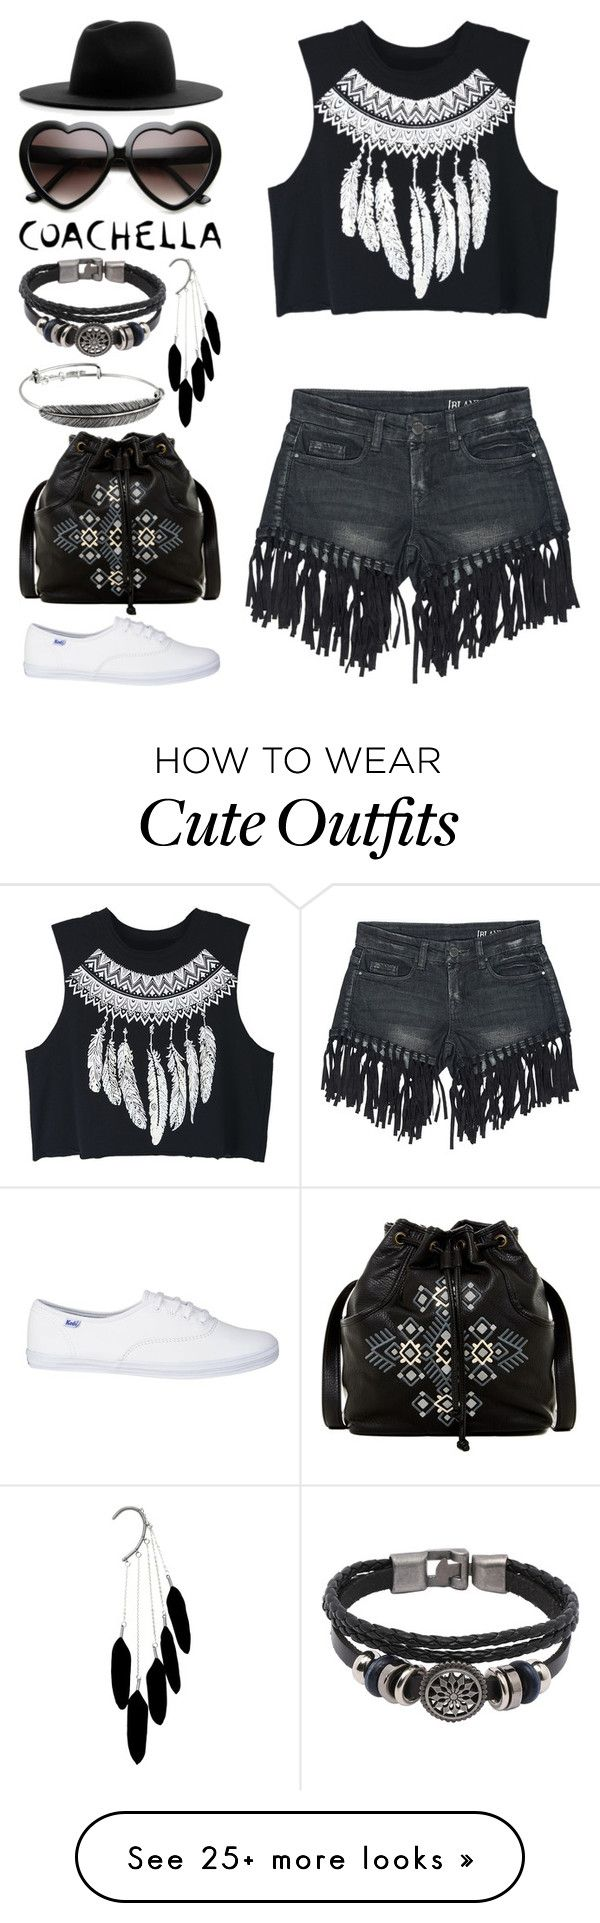 """""""Coachella in Feathers"""" by meaganmuffins on Polyvore featuring Sans Souci, WithChic, T-shirt & Jeans, ZeroUV, Alex and Ani and Études"""